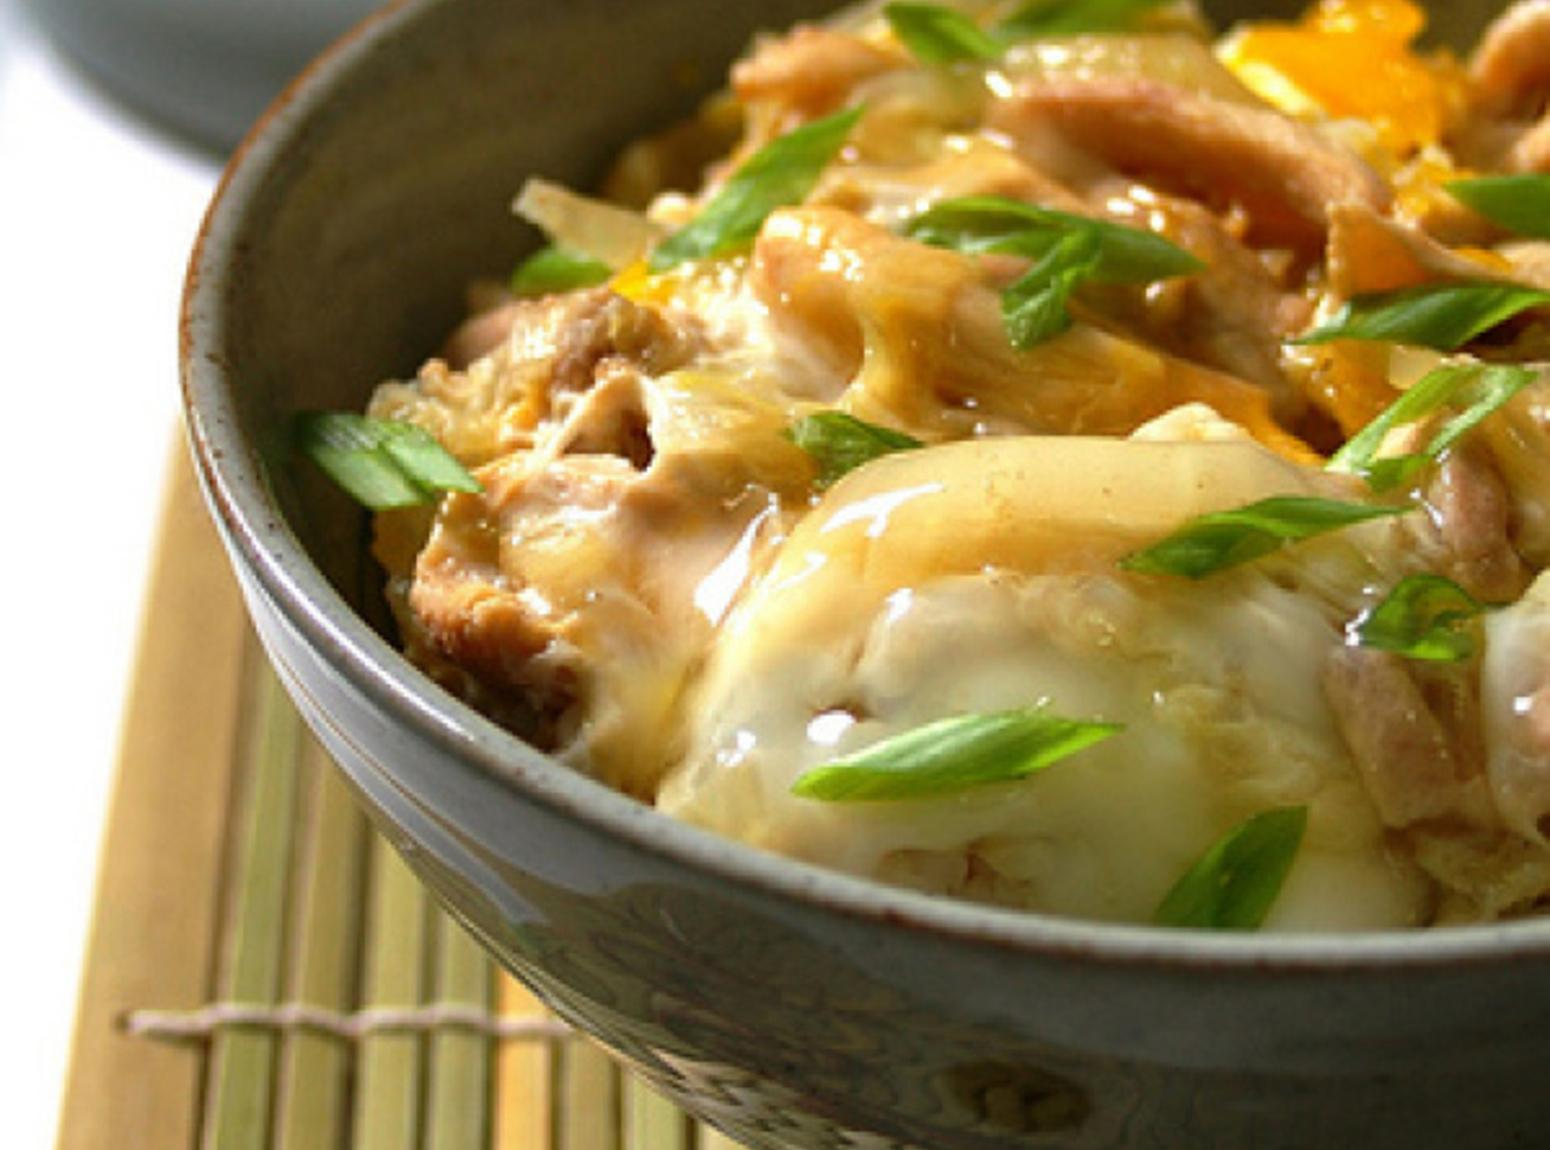 OYAKO DONBURI - A TRADITIONAL JAPANESE DISH Recipe